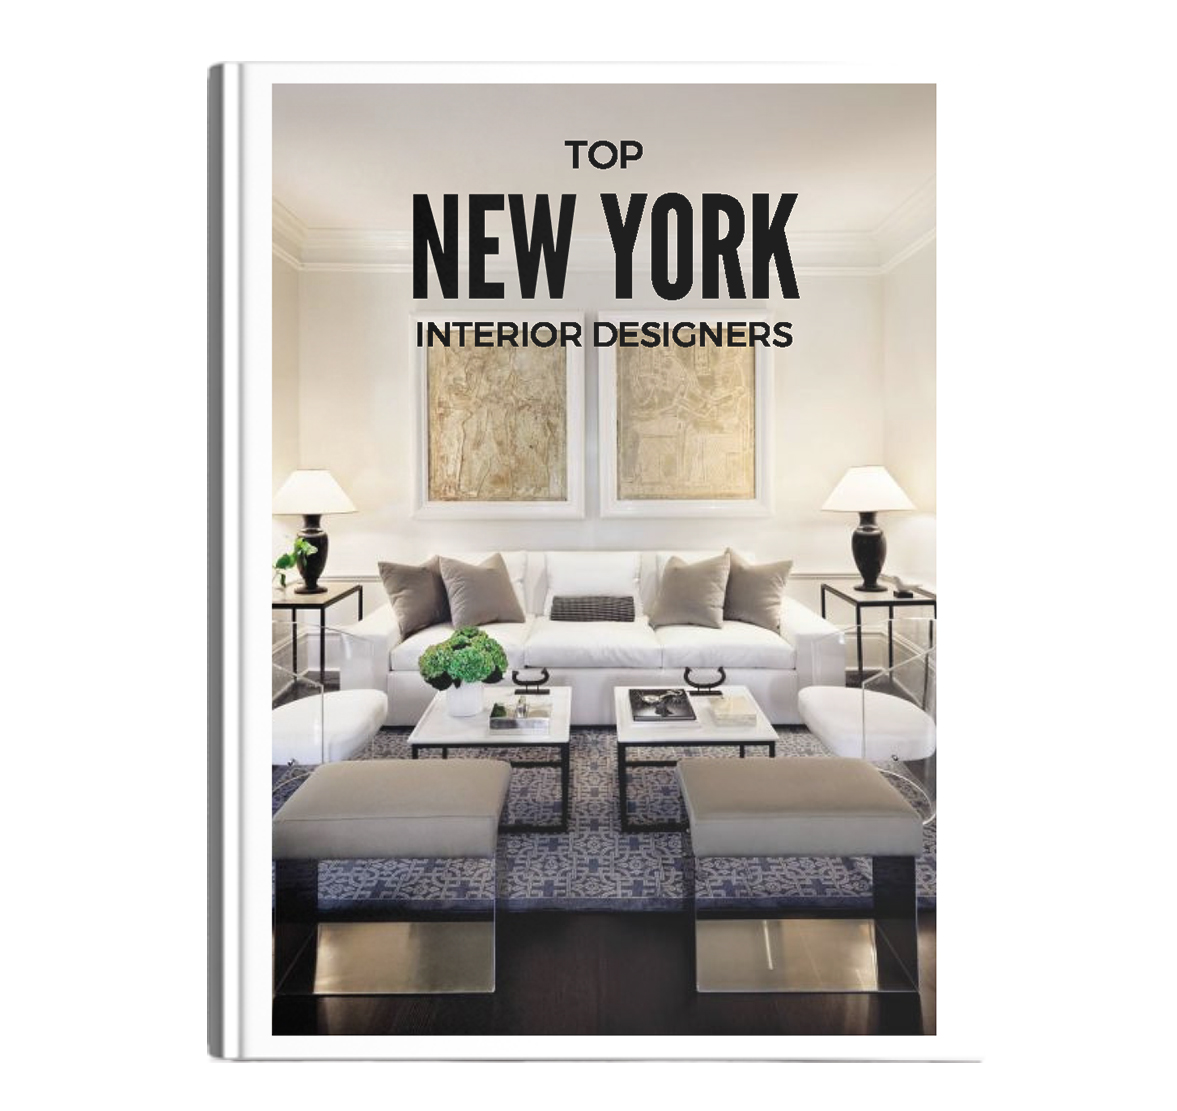 84 Top Interior Designer New York City Contemporary Interior Design Love The Patterned